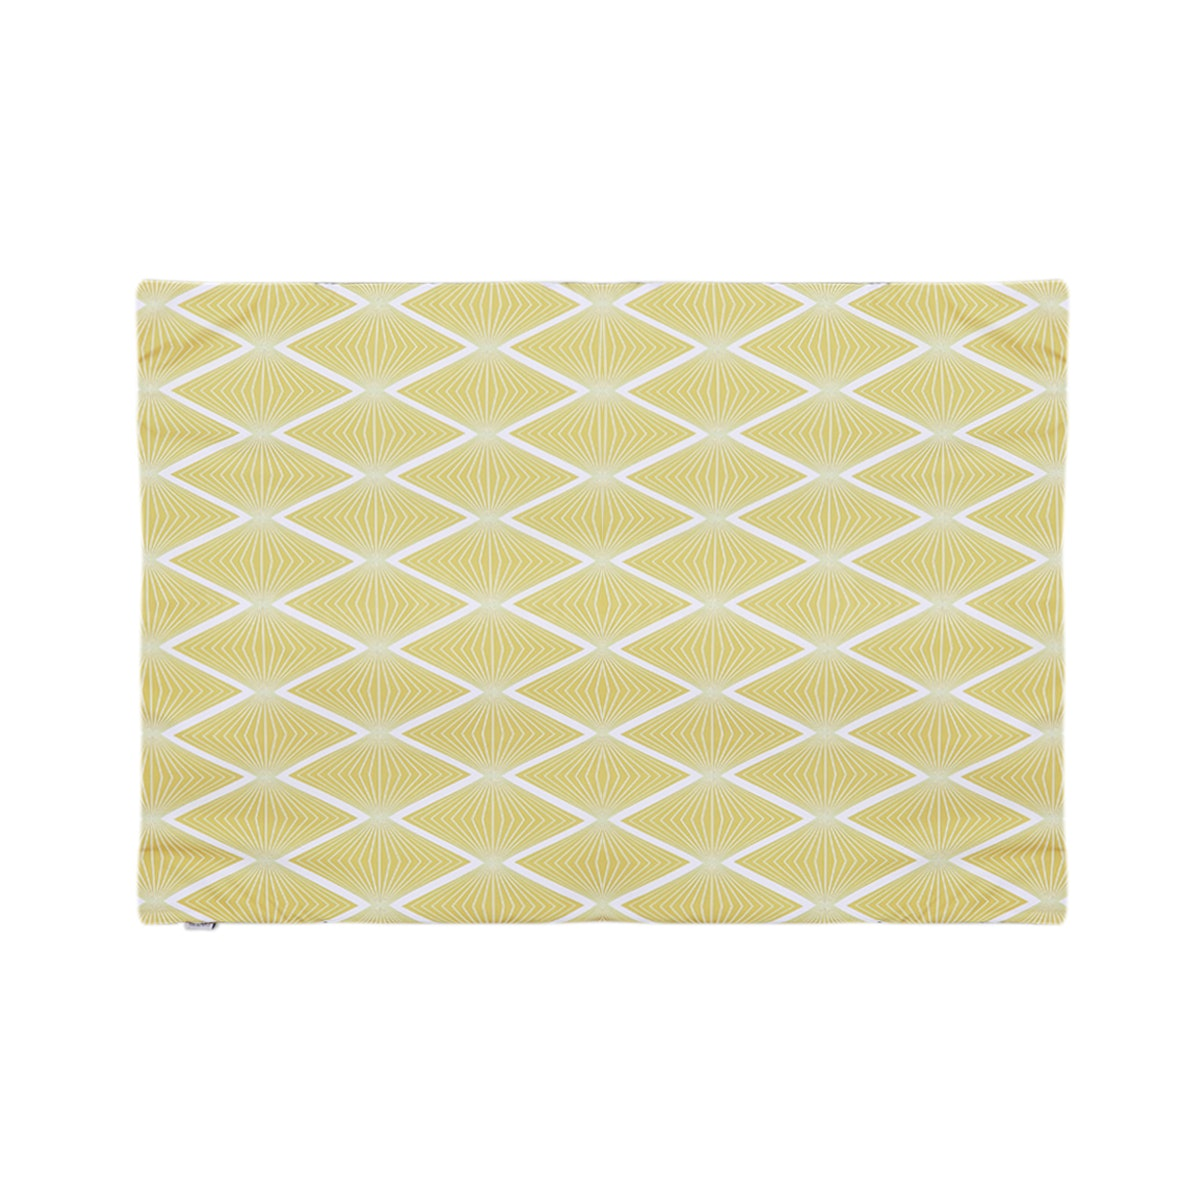 Glerry Home Decor Goldenrod Rug 100x140